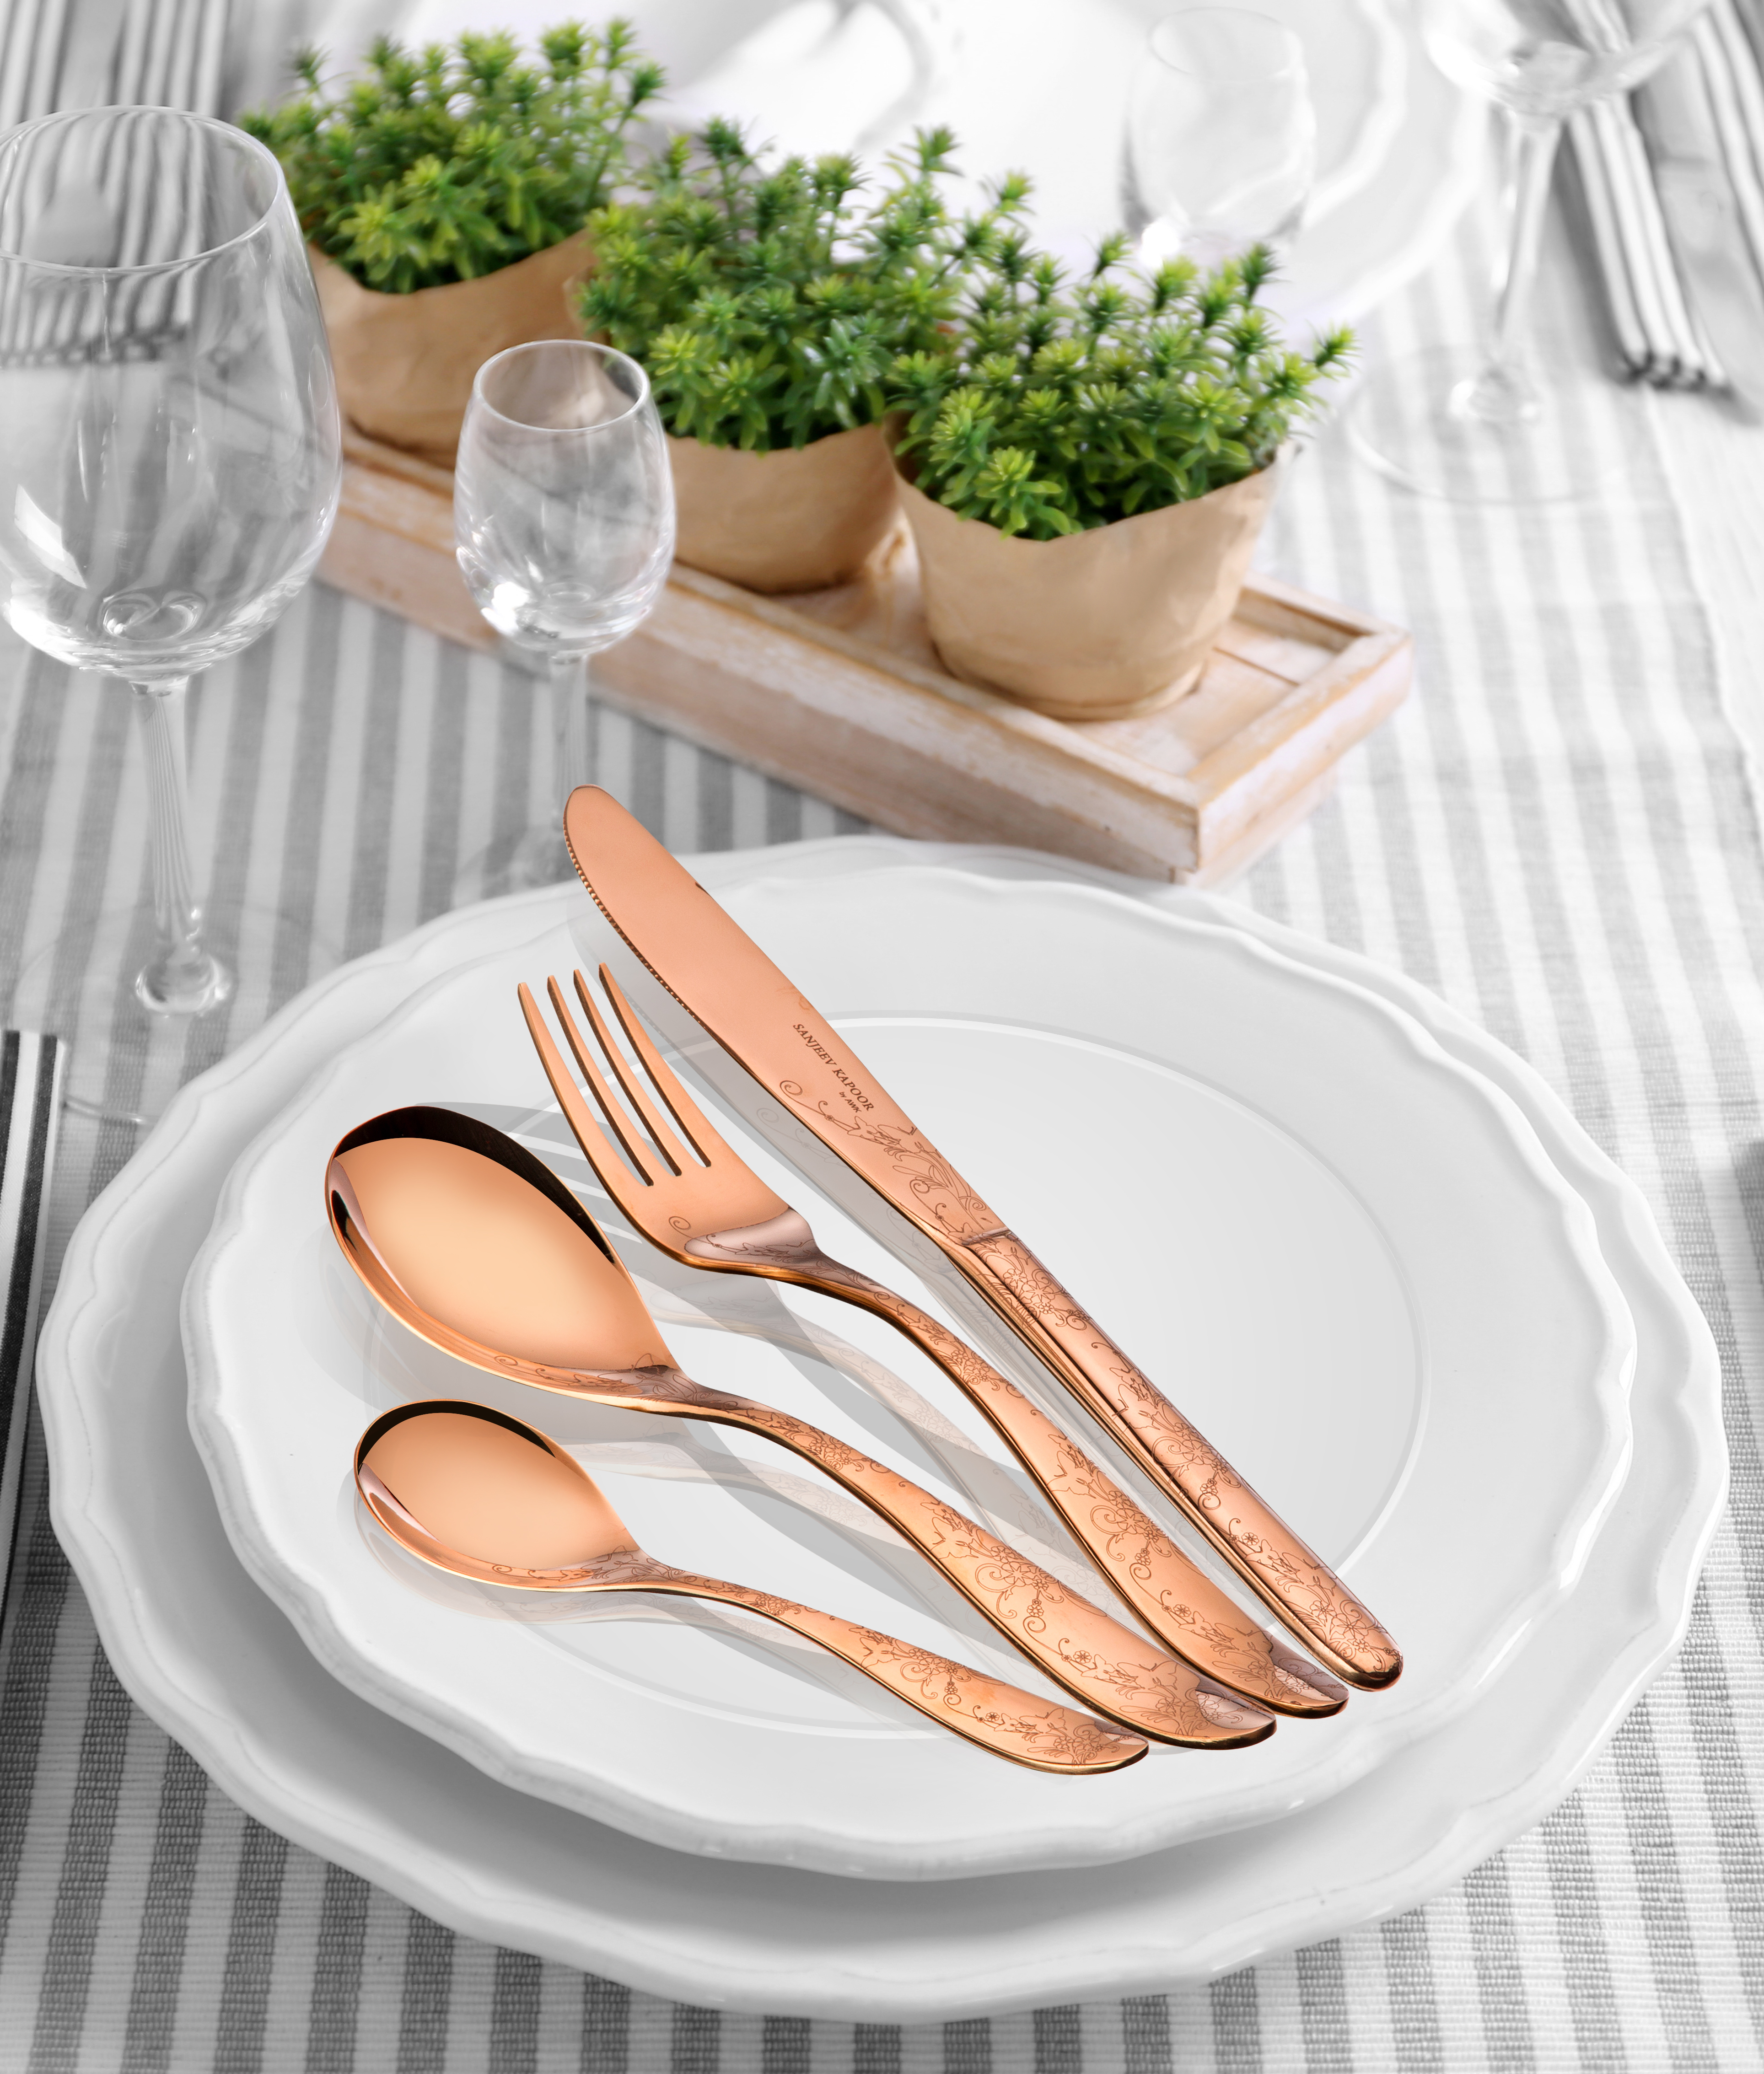 Cutleryset 24Pc set Rose Gold Titanium finish With Baby Spoon Stainless steel Cutlery Sets in Rose Gold Colour by Sanjeev Kapoor